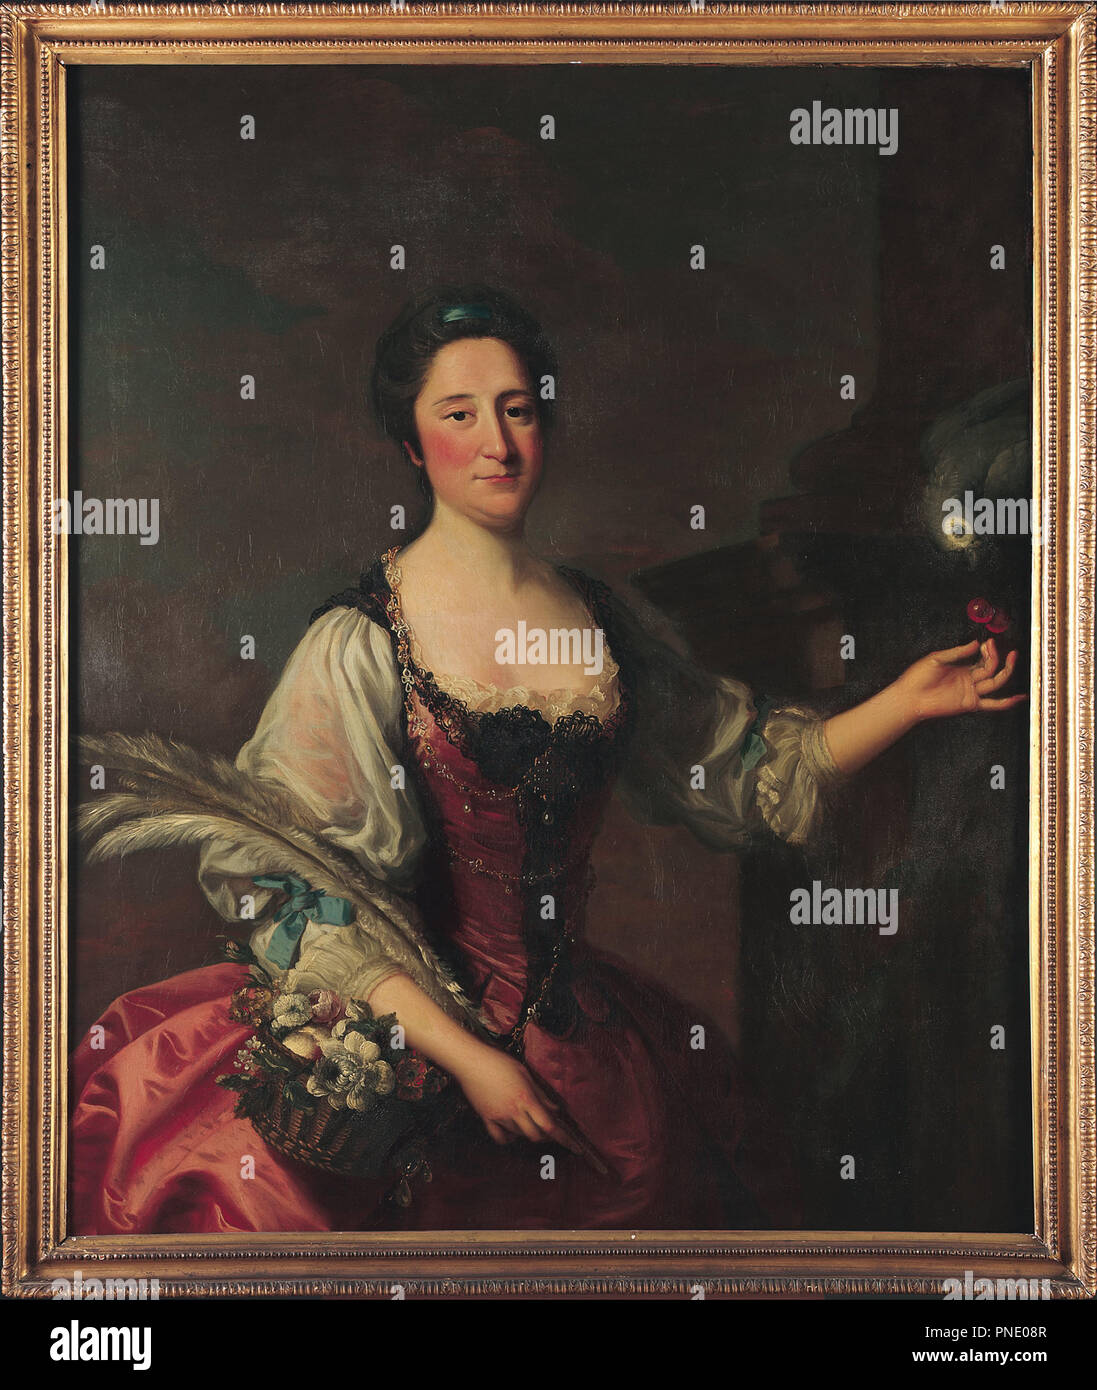 Phila Franks. Date/Period: 18th century. Oil painting. Height: 1,123 mm (44.21 in); Width: 897 mm (35.31 in). Author: HUDSON, THOMAS. - Stock Image